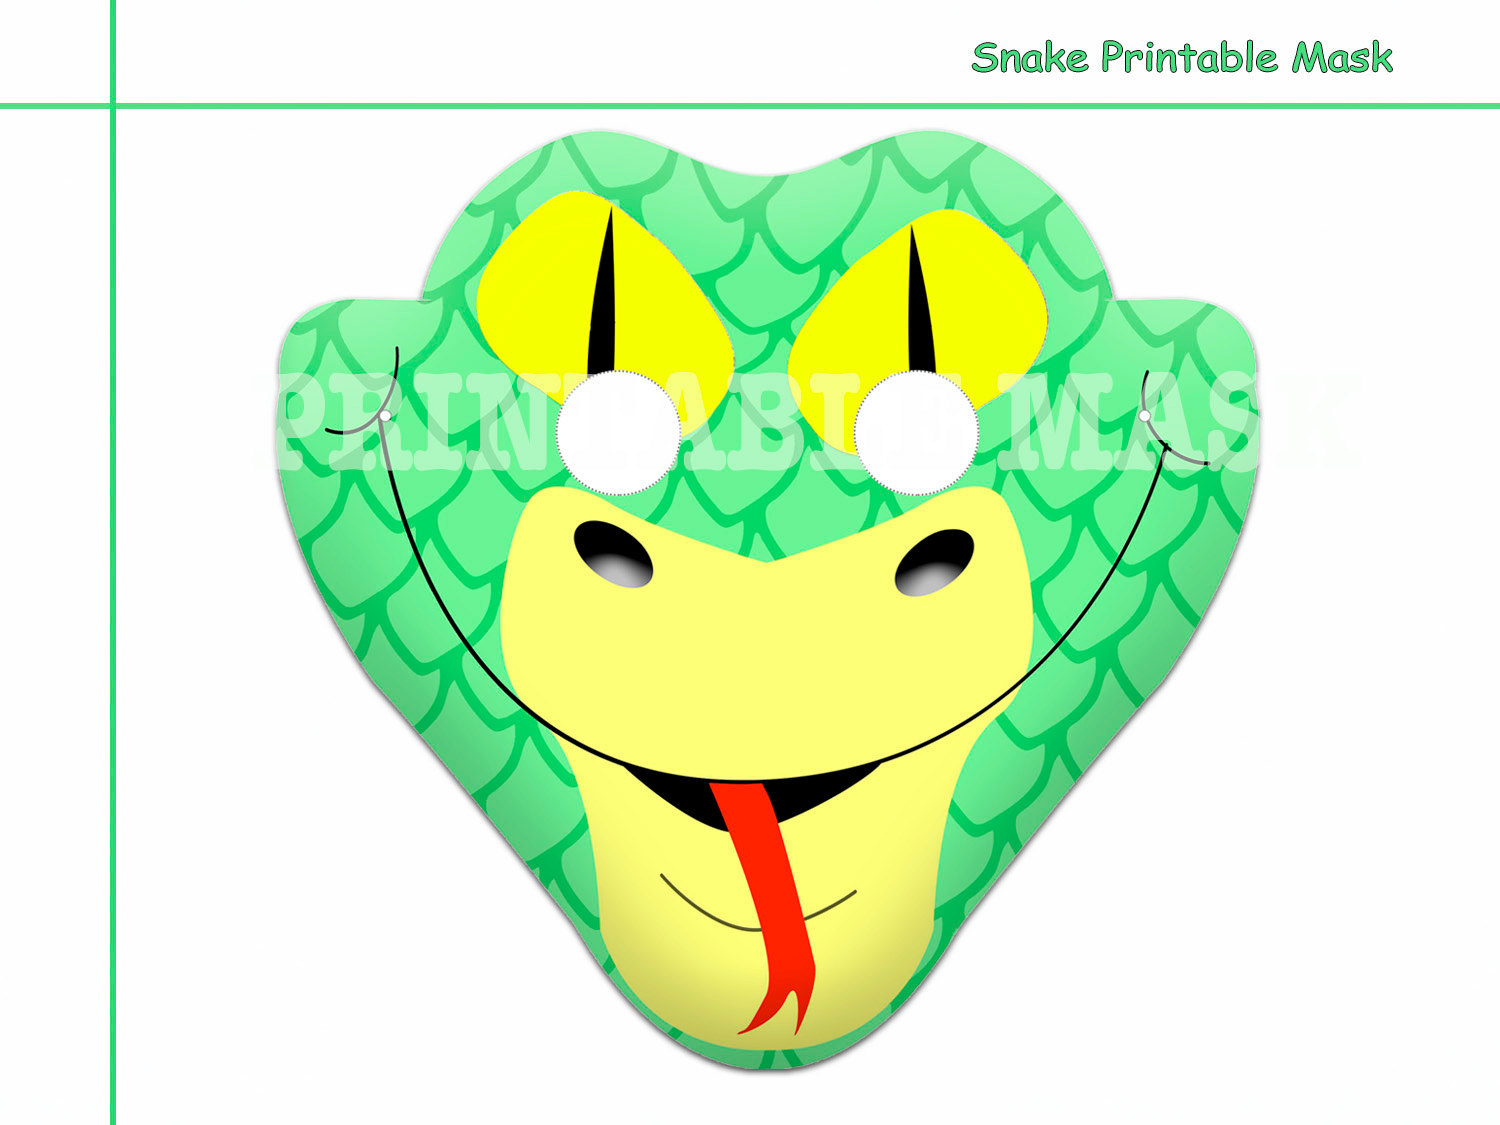 Unique Snake Printable Mask Photo Props By